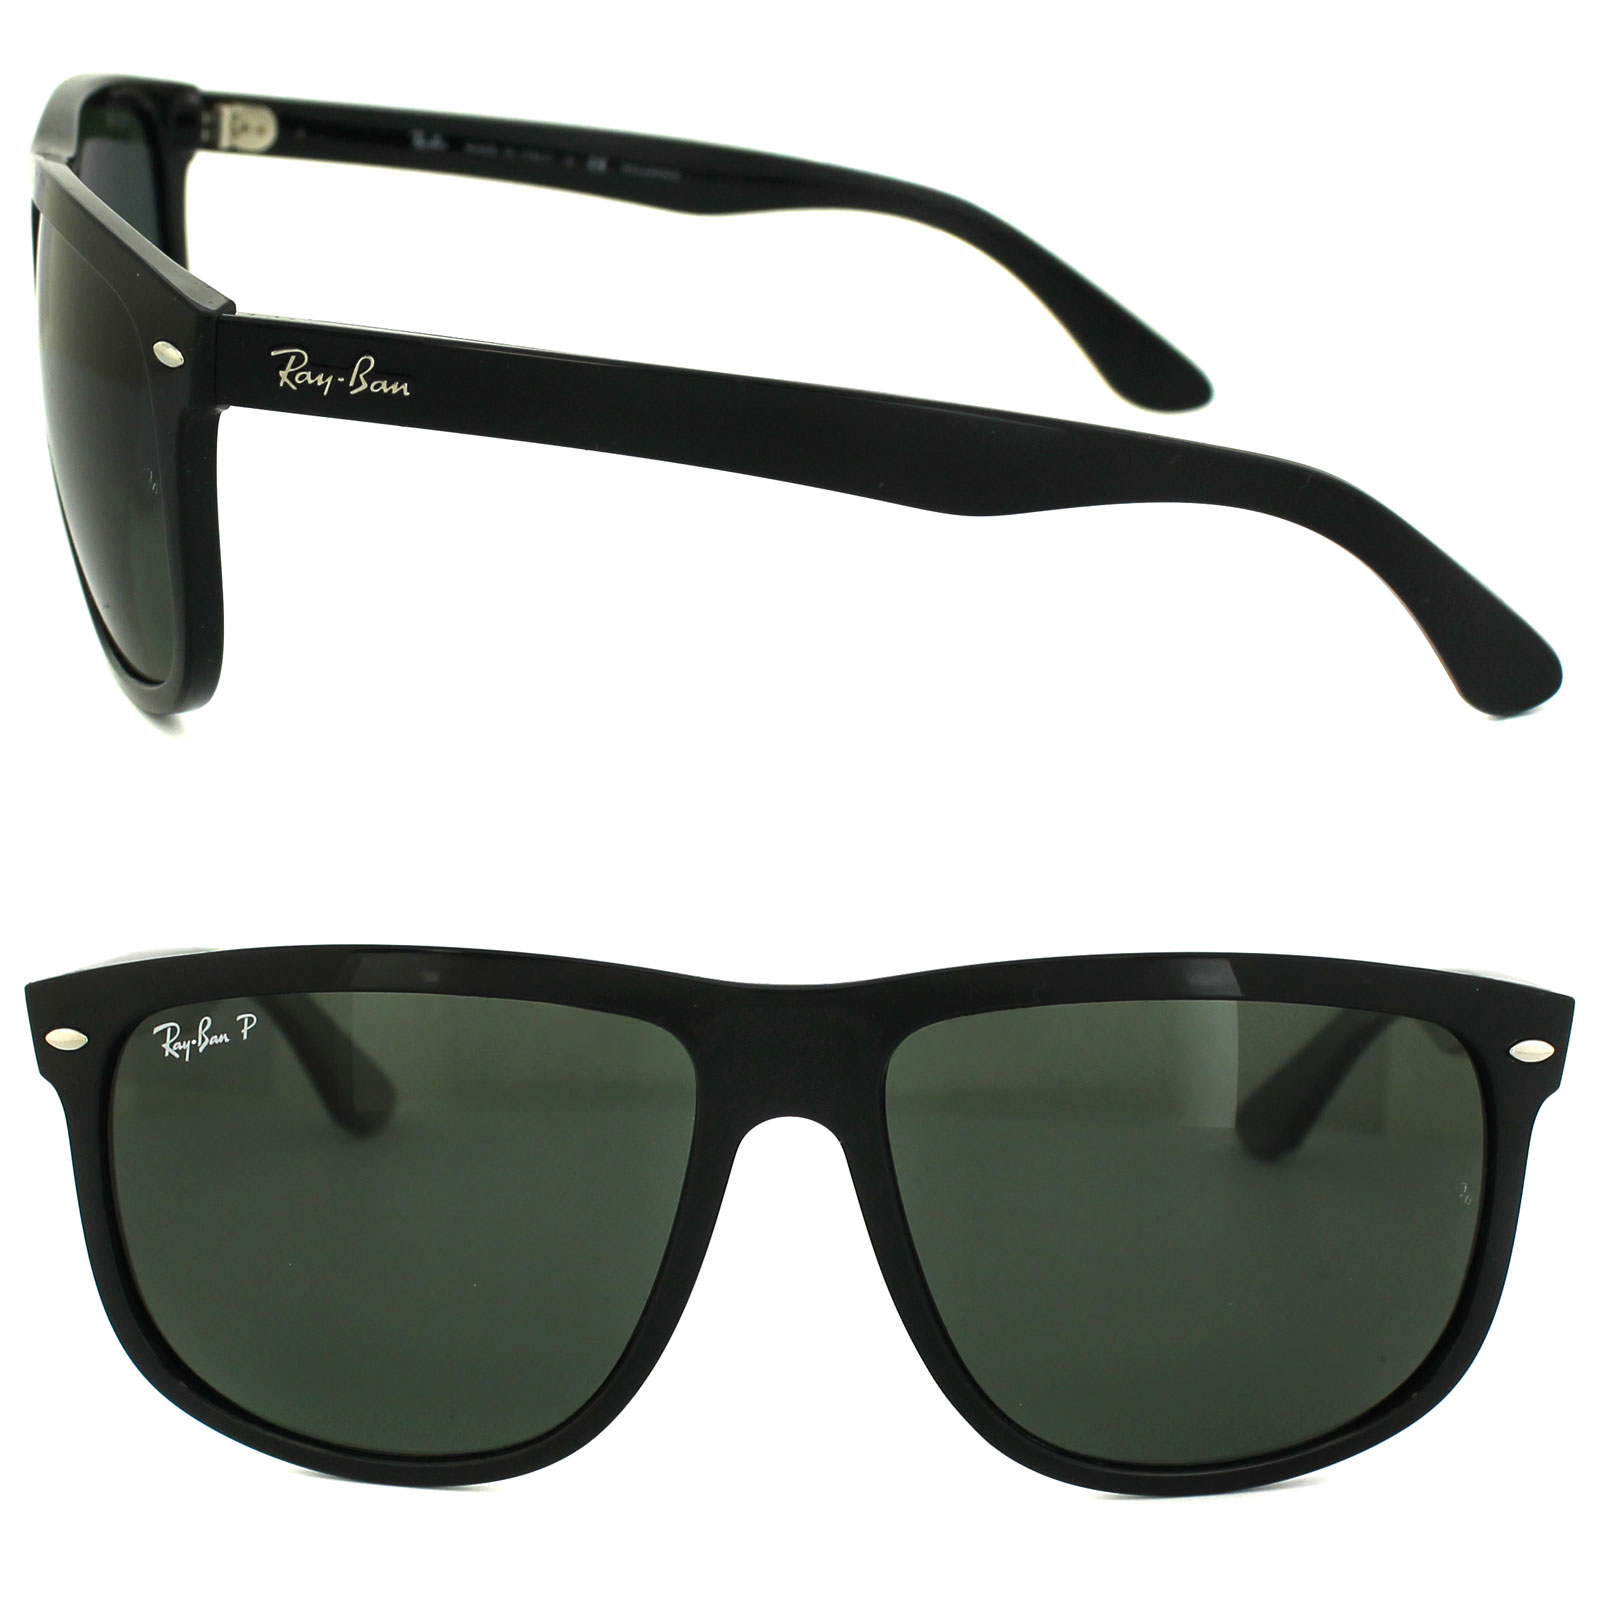 af395e927a Sentinel Ray-Ban Sunglasses 4147 601 58 Black Green Polarized Large 50mm